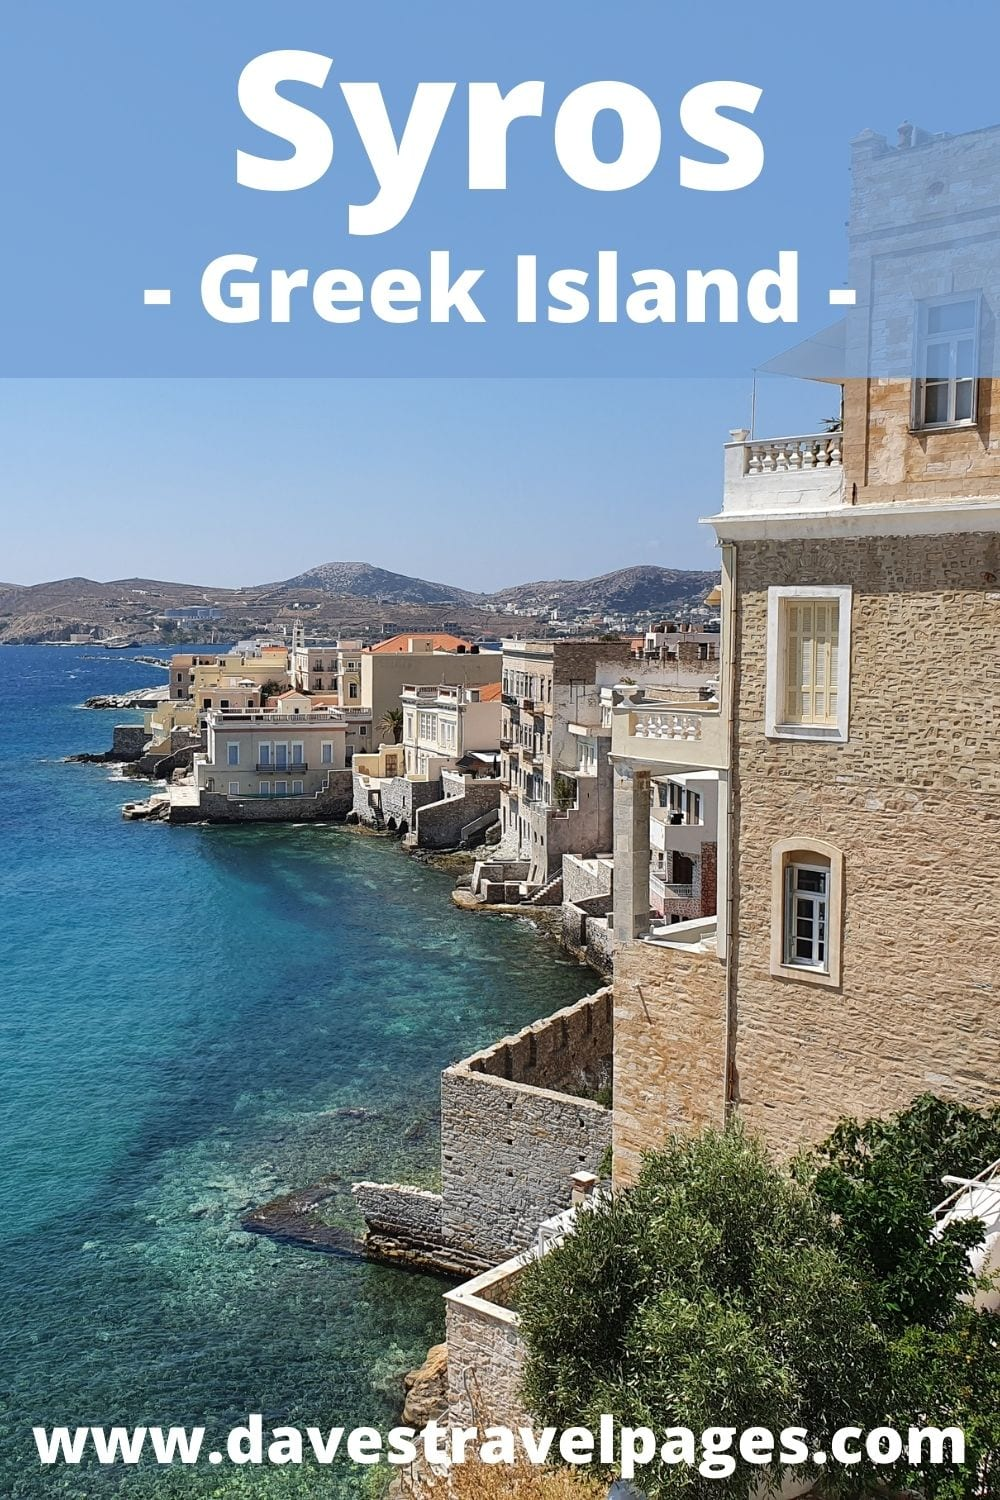 How to travel from Mykonos to Syros by ferry